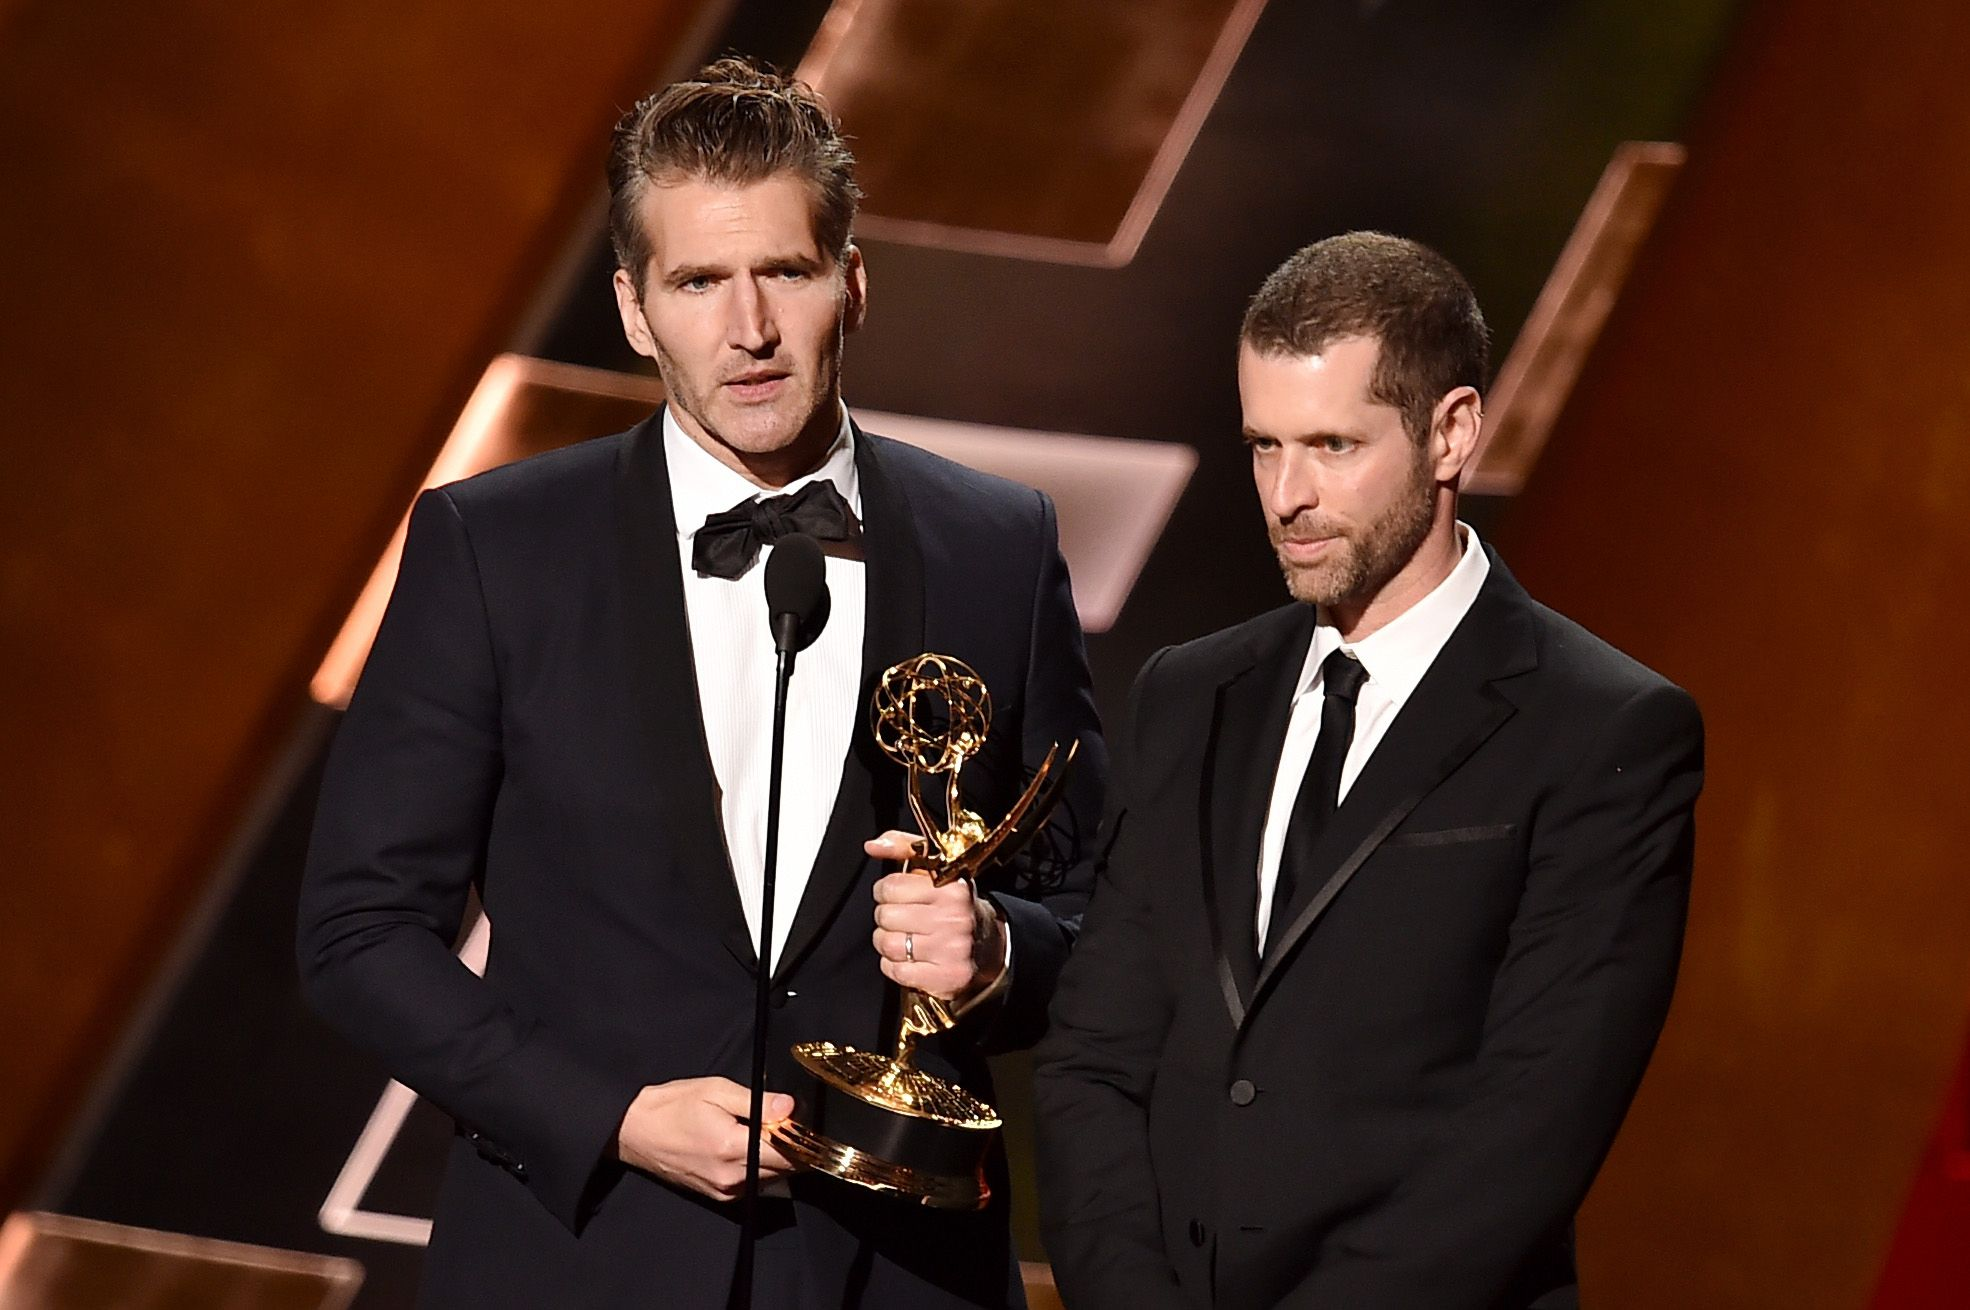 Game of Thrones showrunners David Benioff and D.B. Weiss